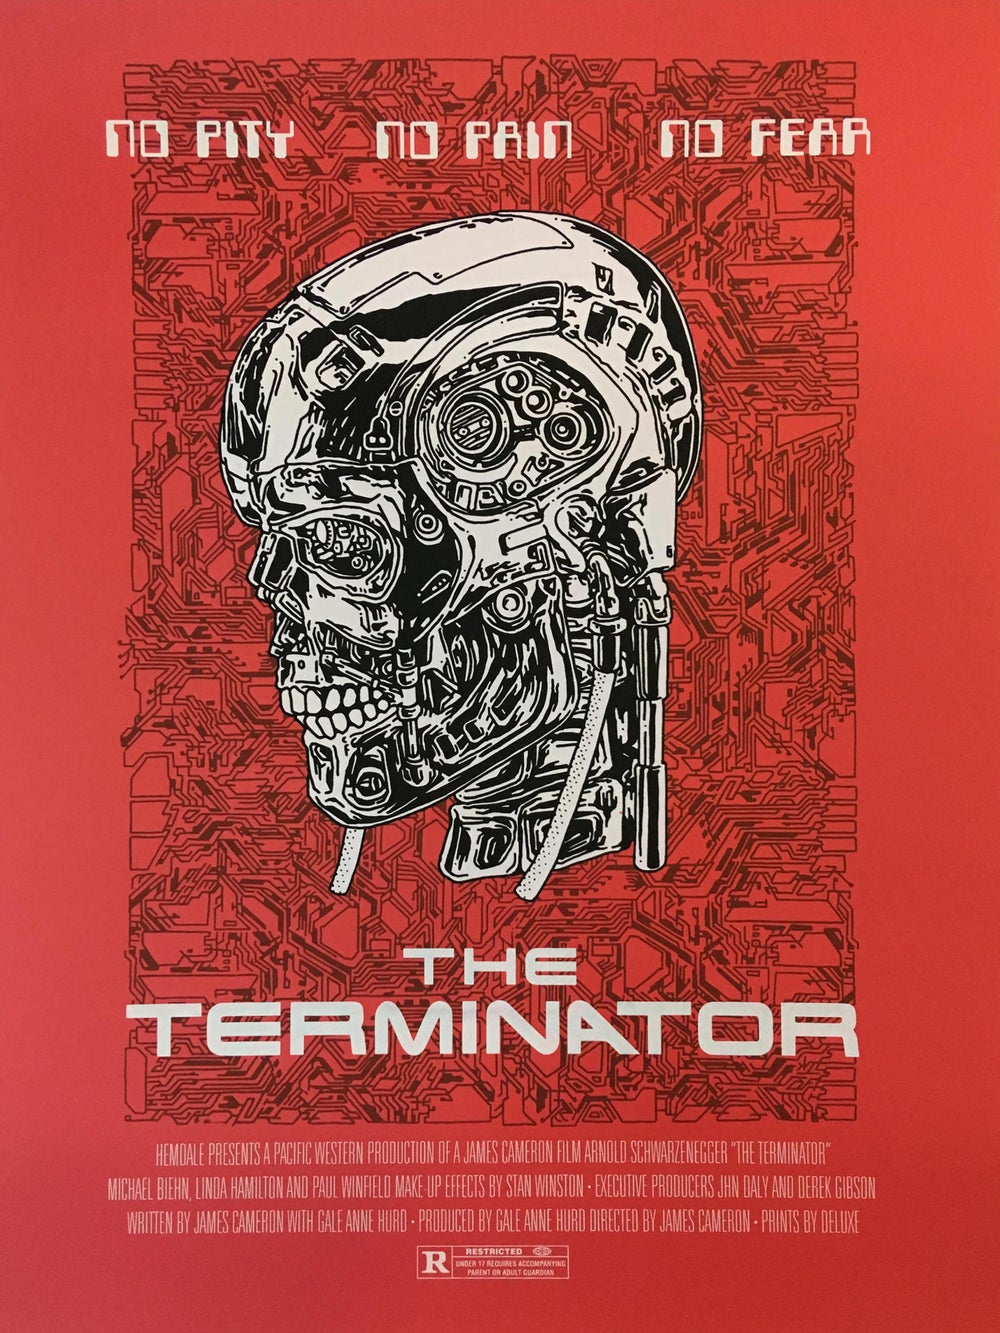 Image of Terminator poster